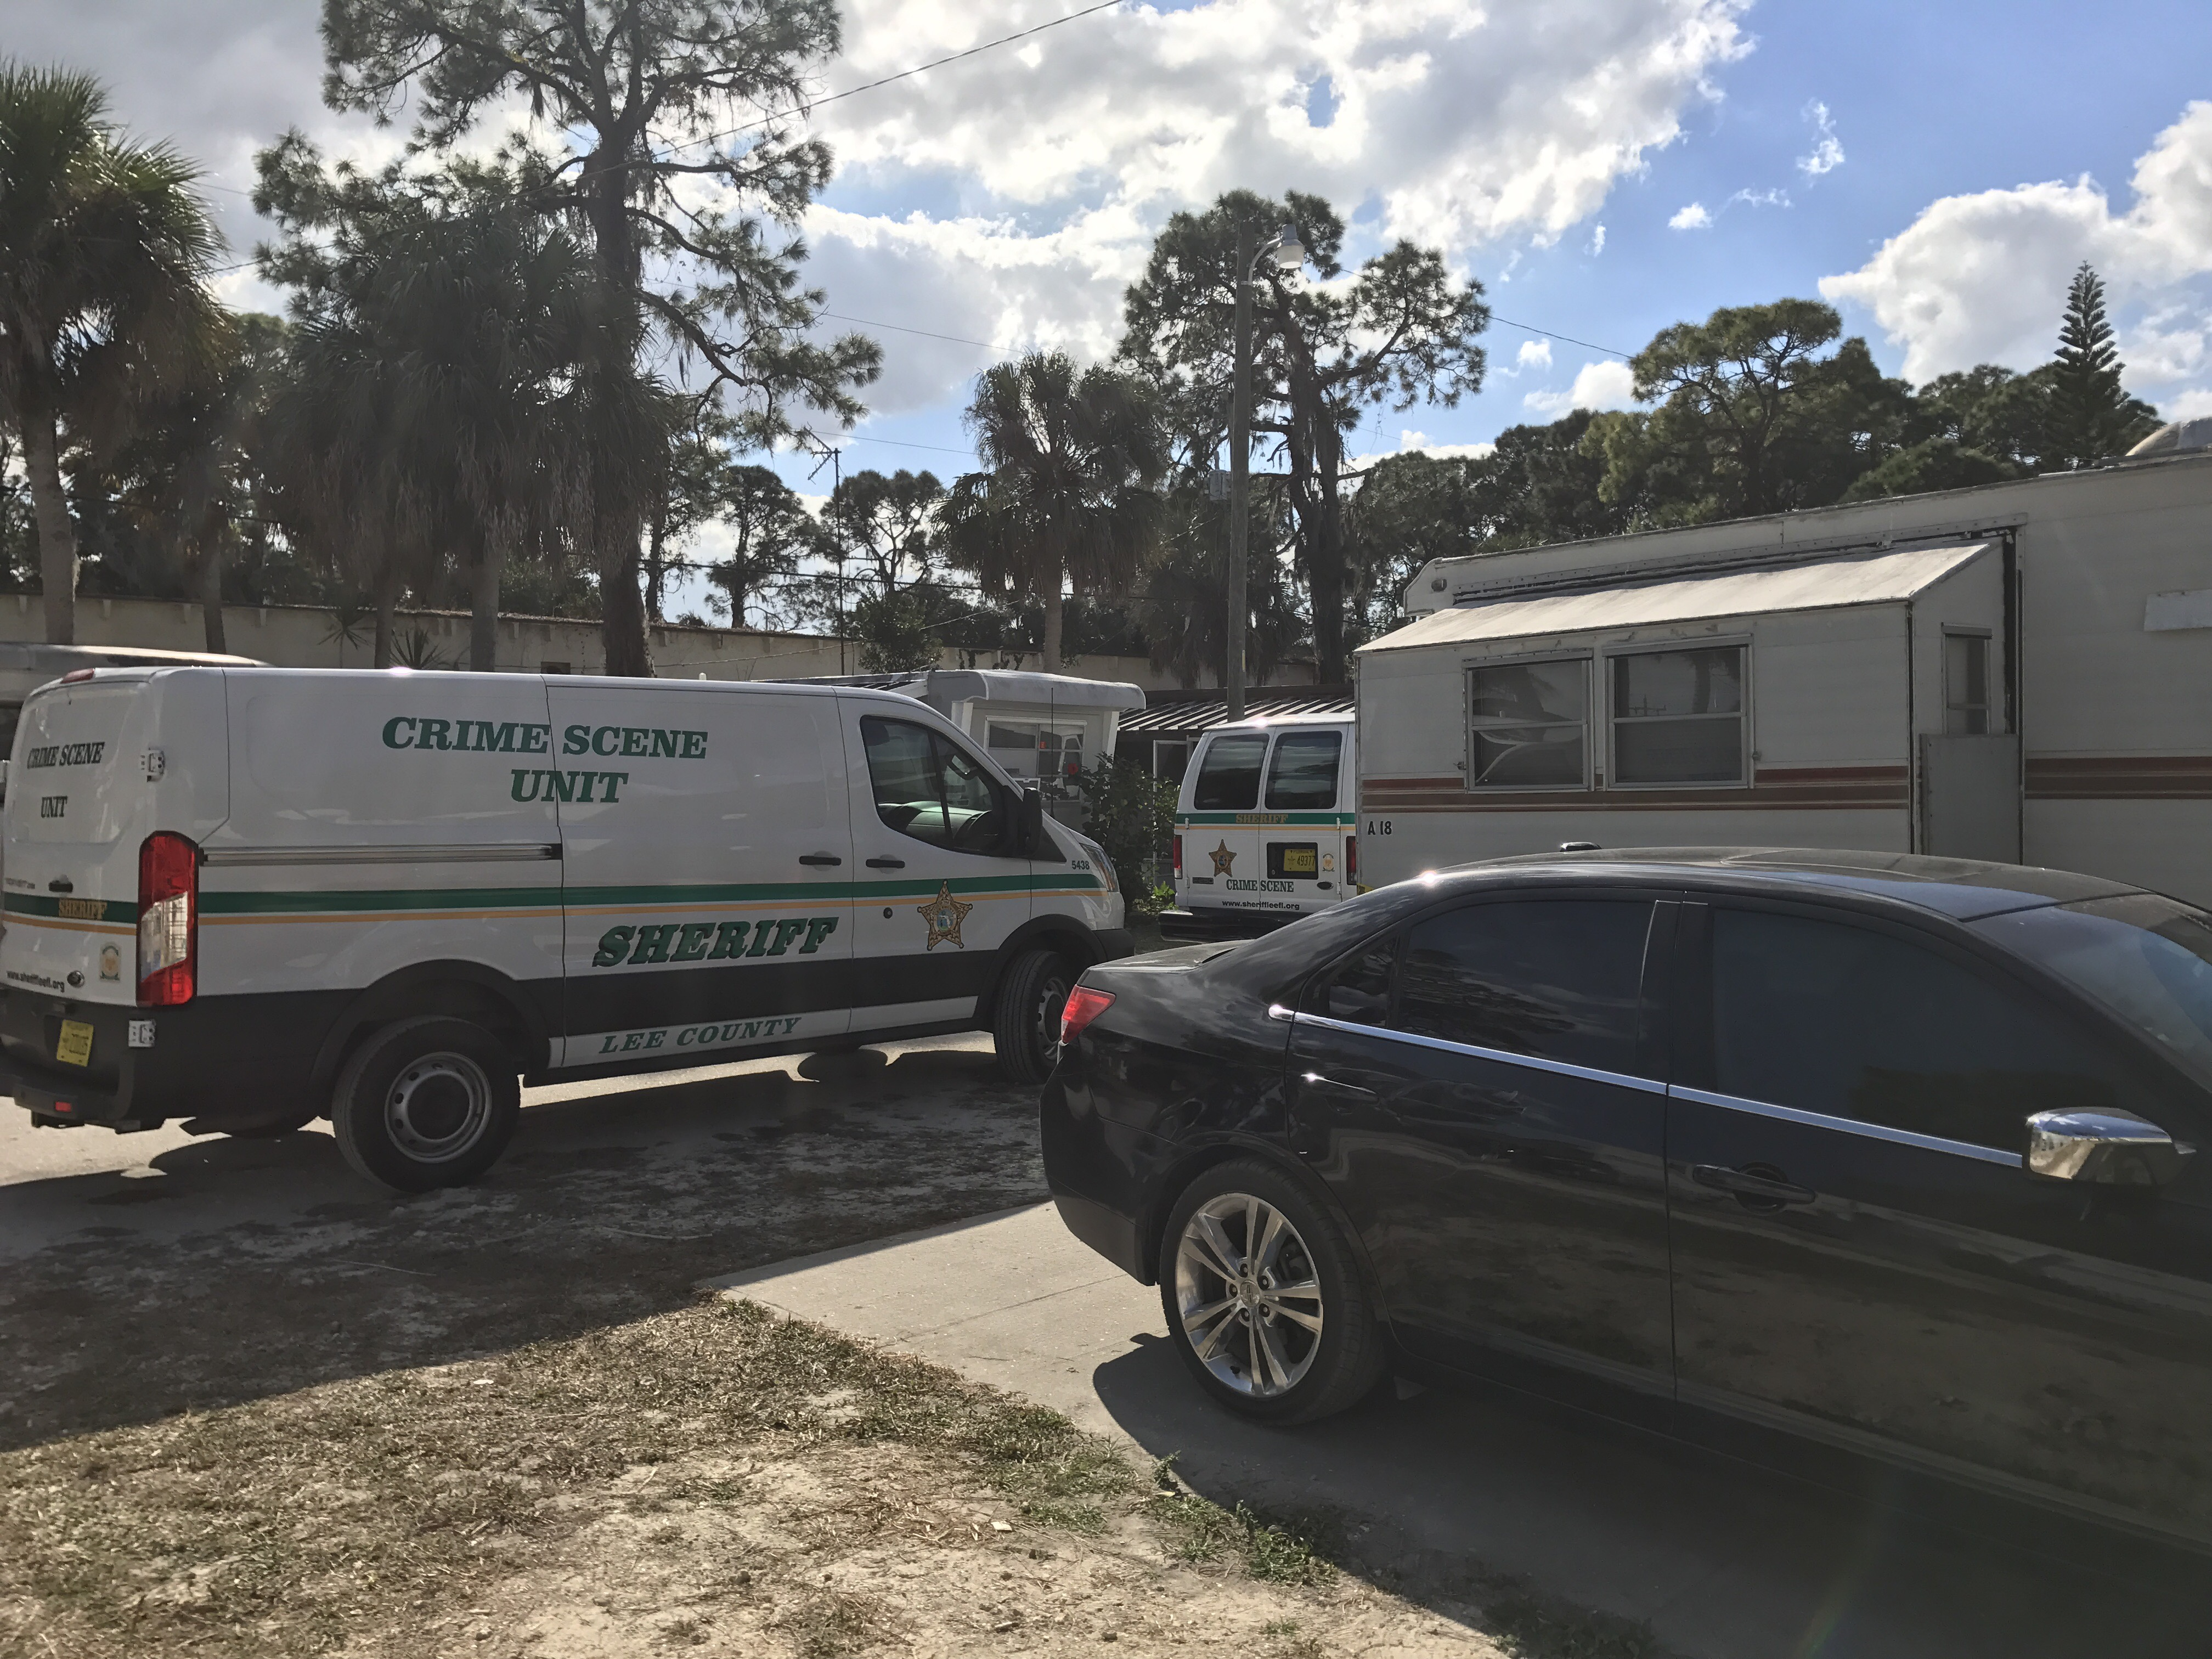 Illinois lee county lee - Lee County Sheriff S Deputies Identified An Illinois Man As The Person Whose Death Sparked An Investigation Friday At The Jones Mobile Home Park